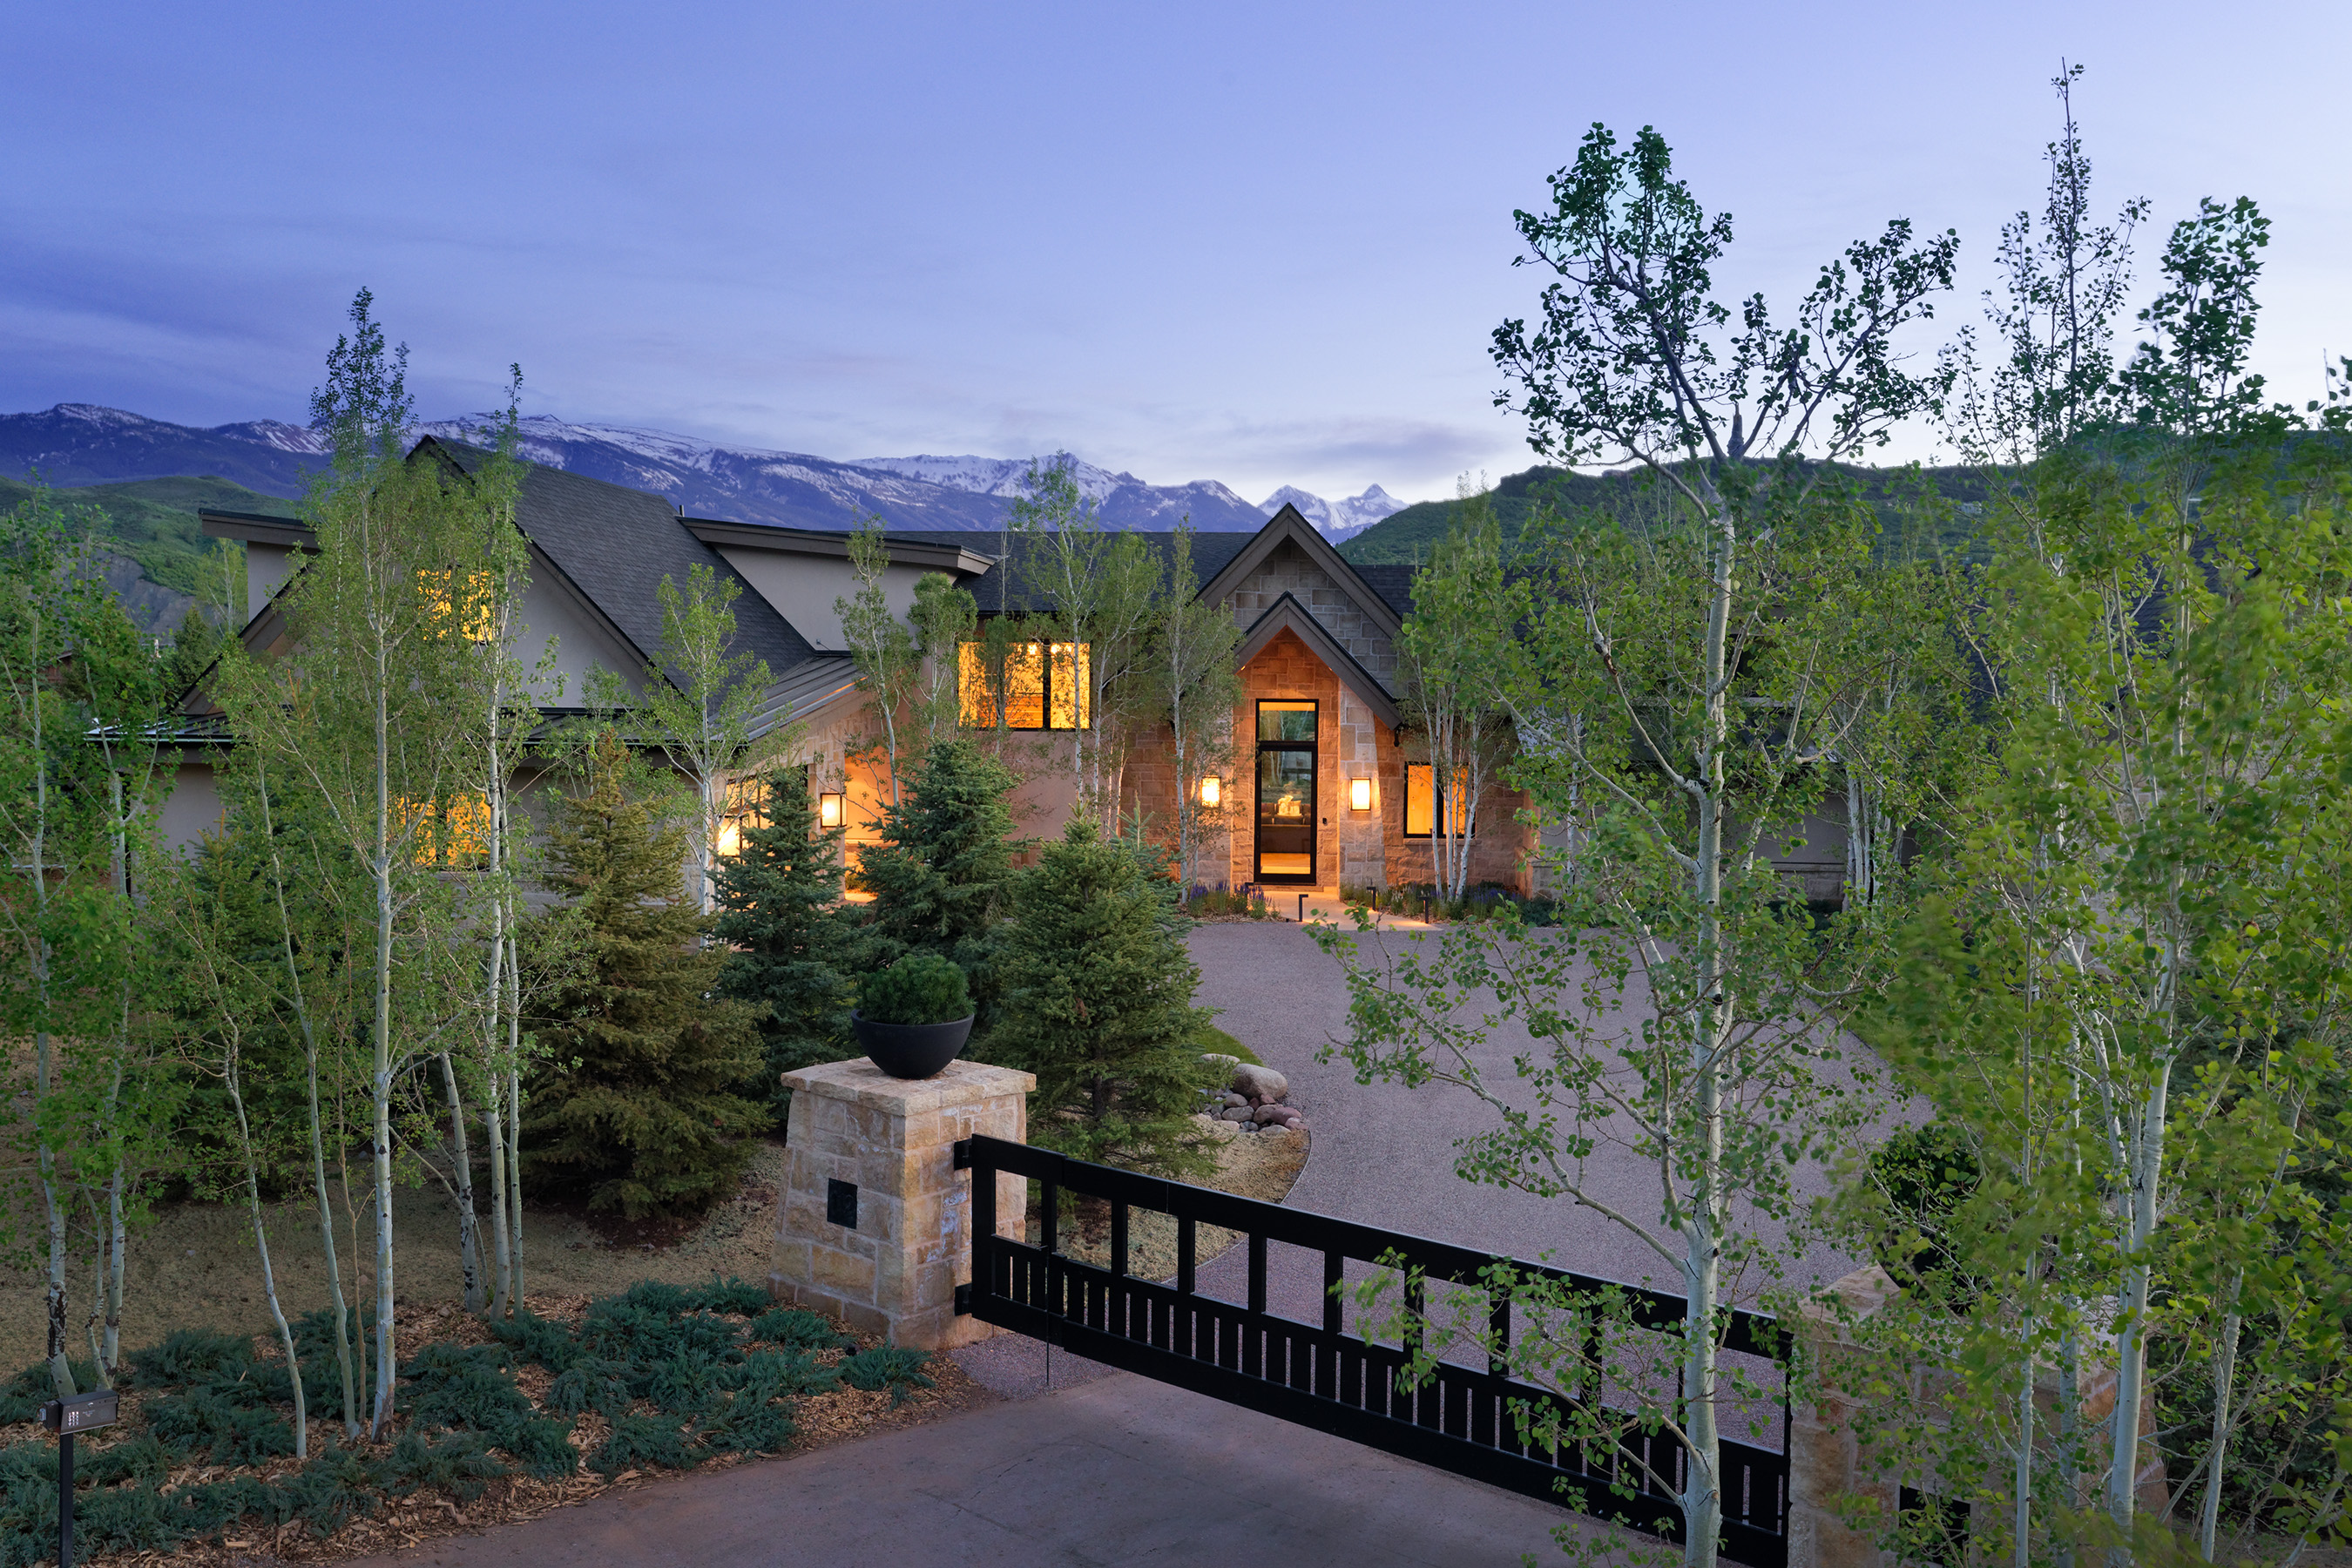 Villa per Vendita alle ore The Best of the West 112 Byers Court McLain Flats, Aspen, Colorado, 81611 Stati Uniti